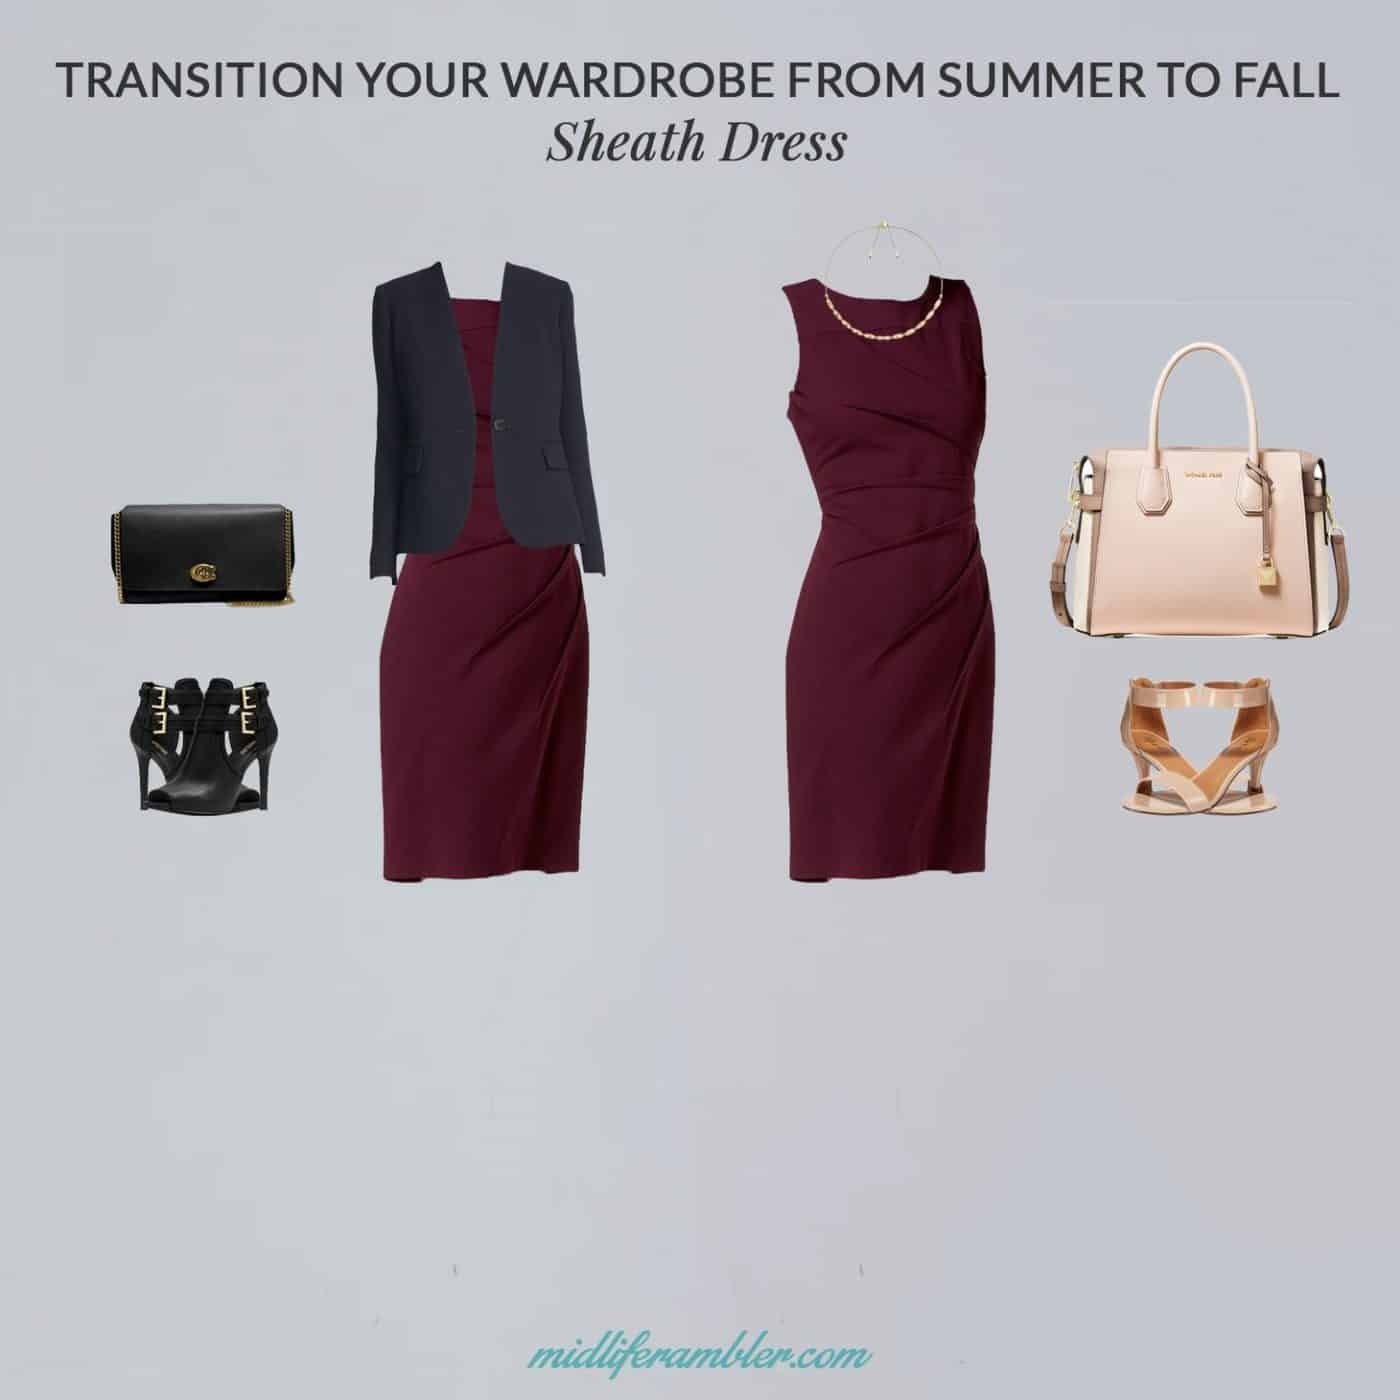 5 Pieces You Can Wear Now and Easily Transition from Summer to Fall Outfits 10